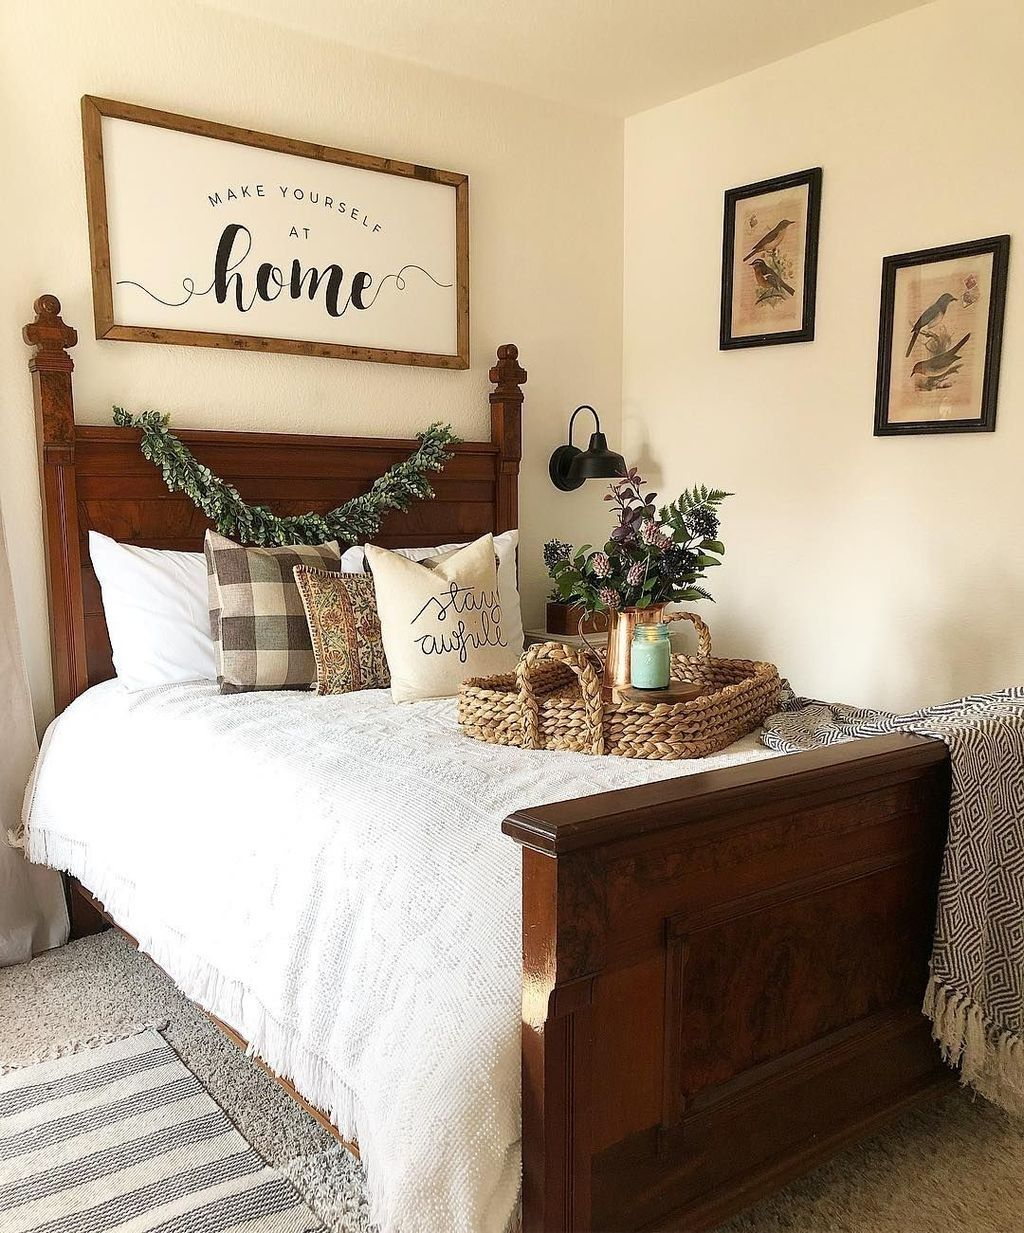 46 Gorgeous Guest Bedroom Decoration Ideas Homyhomee Small Guest Bedroom Guest Bedroom Decor Guest Bedroom